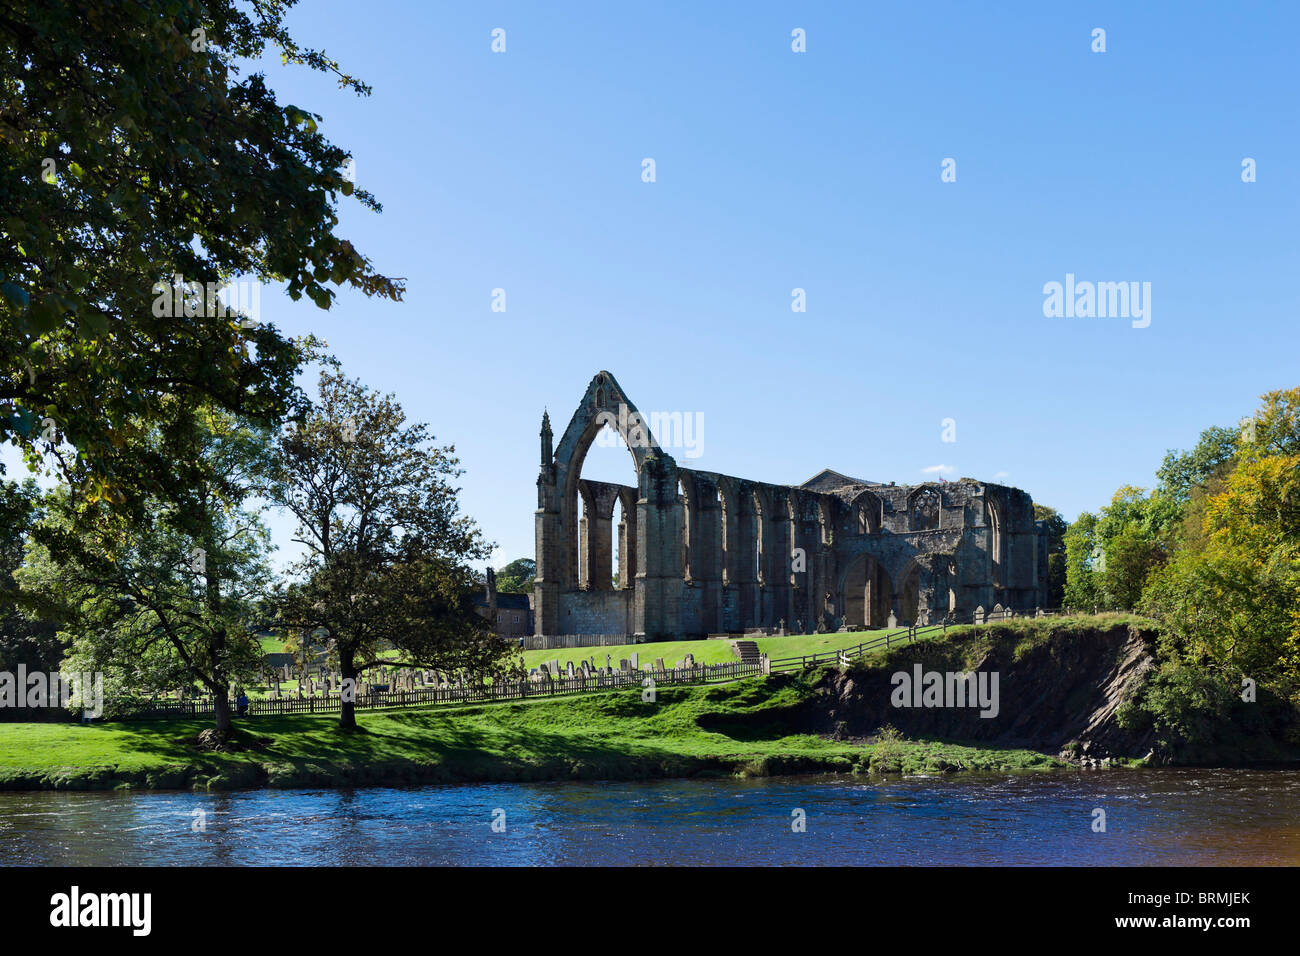 Bolton Priory viewed from over the River Wharfe, Bolton Abbey, Wharfedale, Yorkshire Dales, North Yorkshire, England, - Stock Image